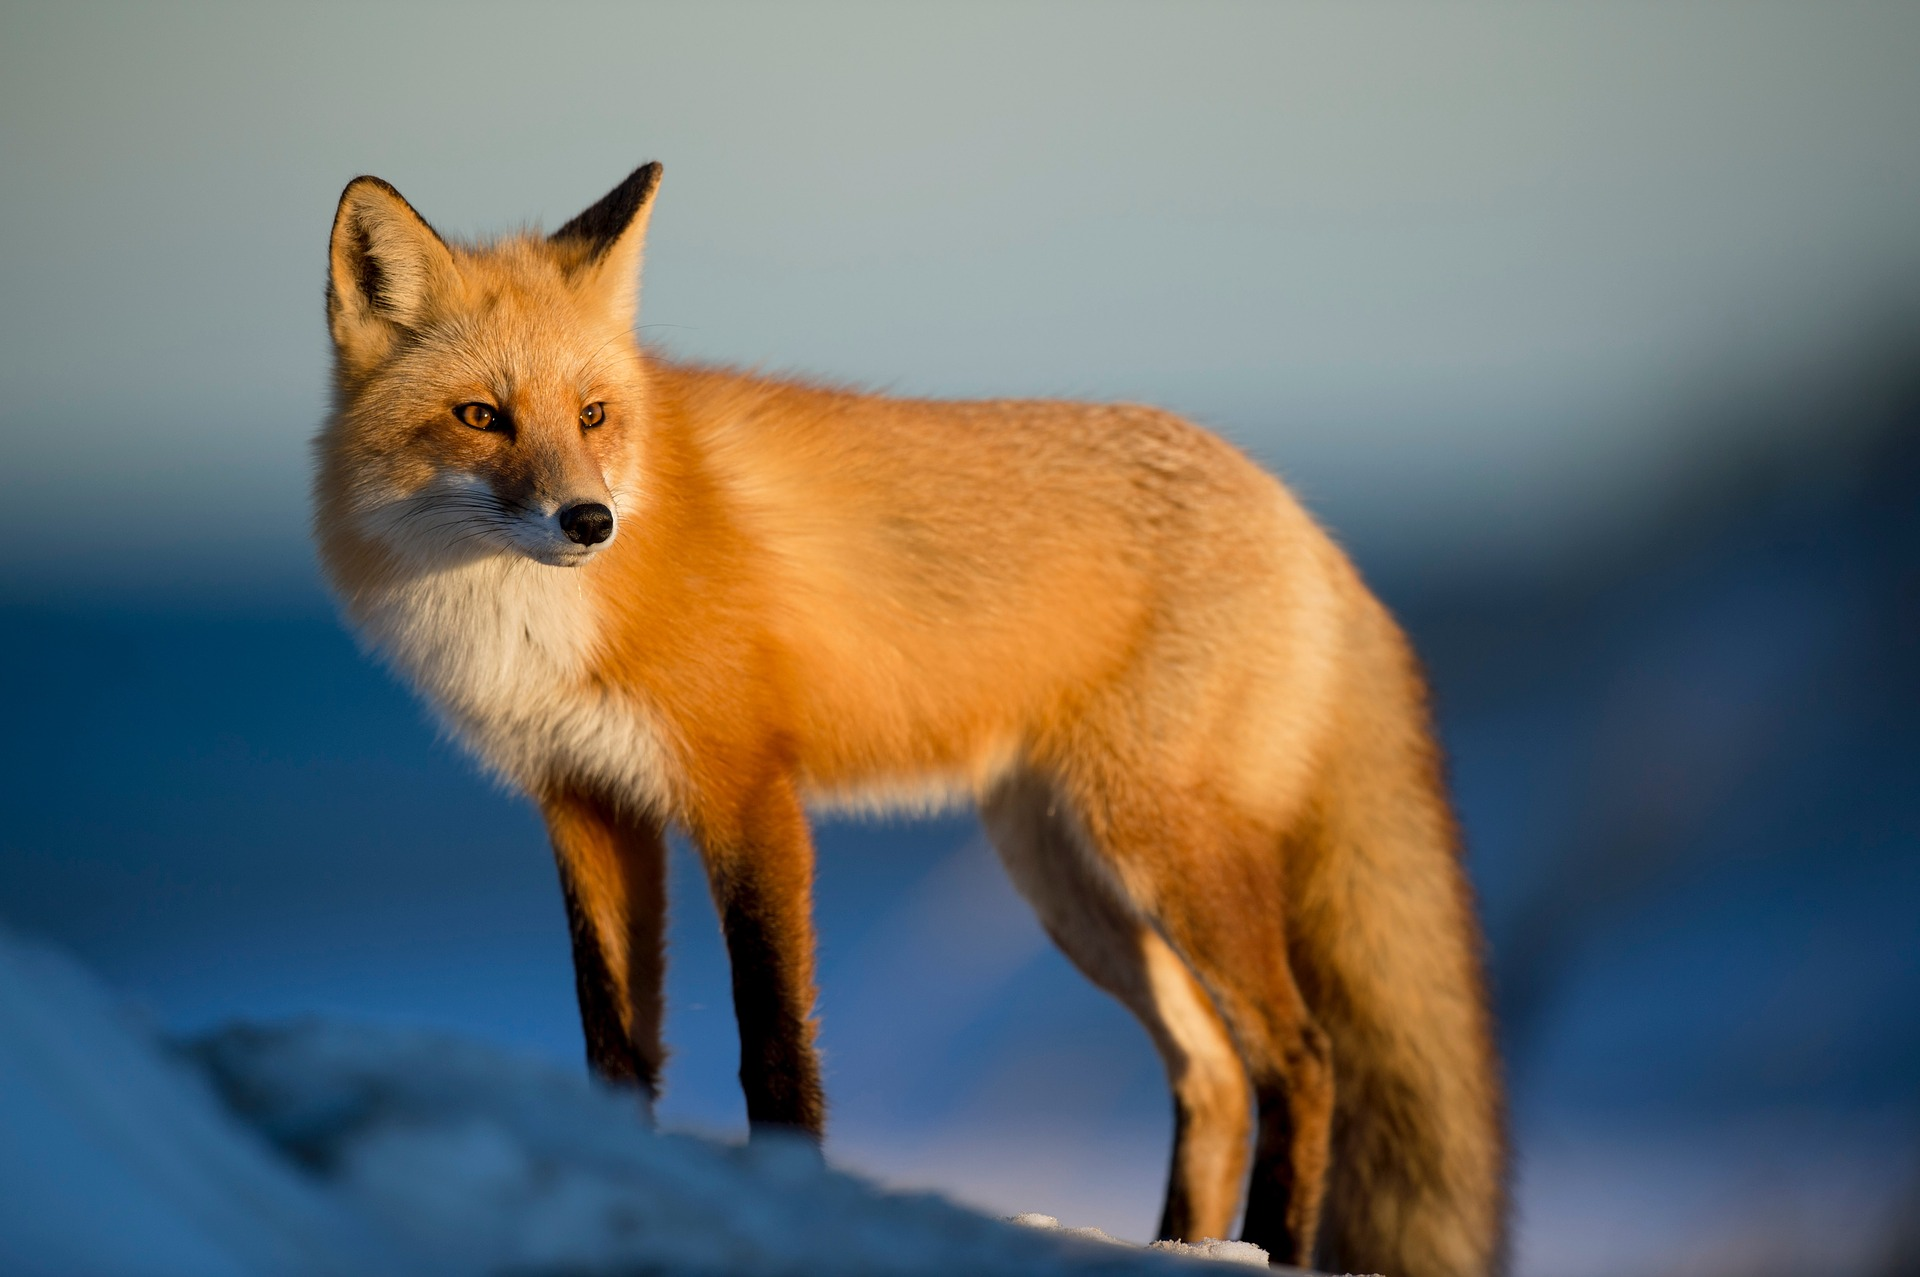 fox-2597803_1920 by StockSnap on Pixabay